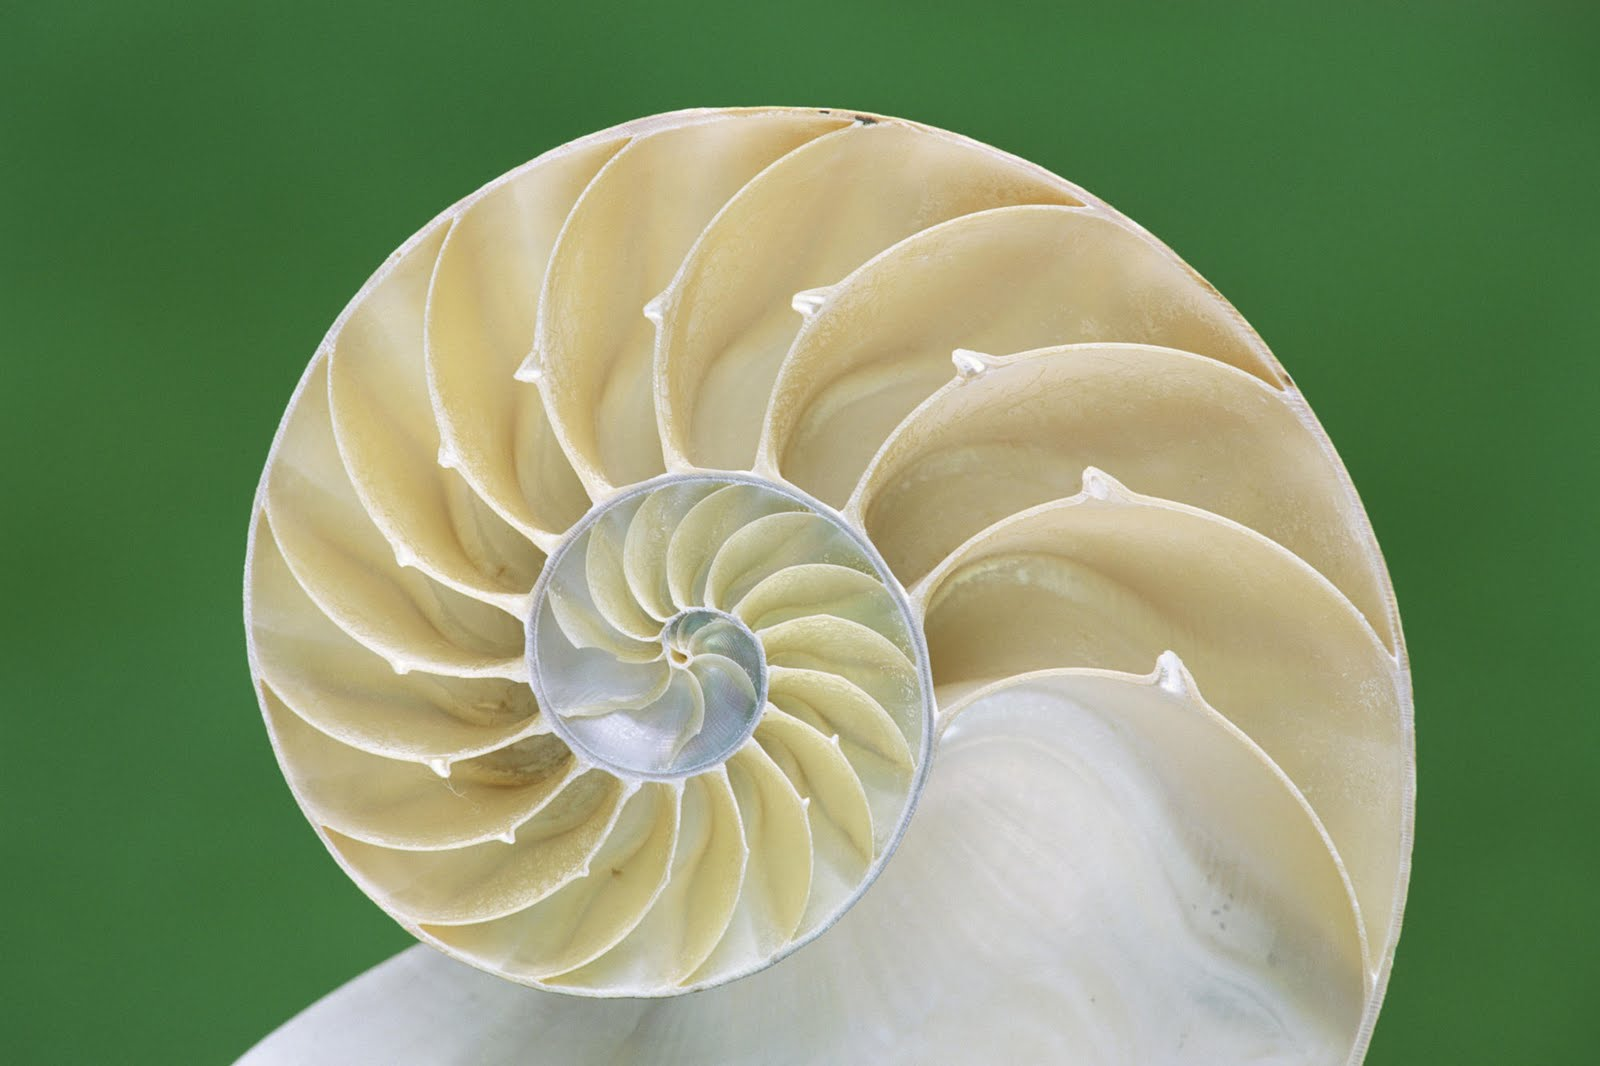 shell incorporation In the matter of royal dutch shell plc, and shell international exploration and production inc, respondents order instituting cease-and-desist proceedings.